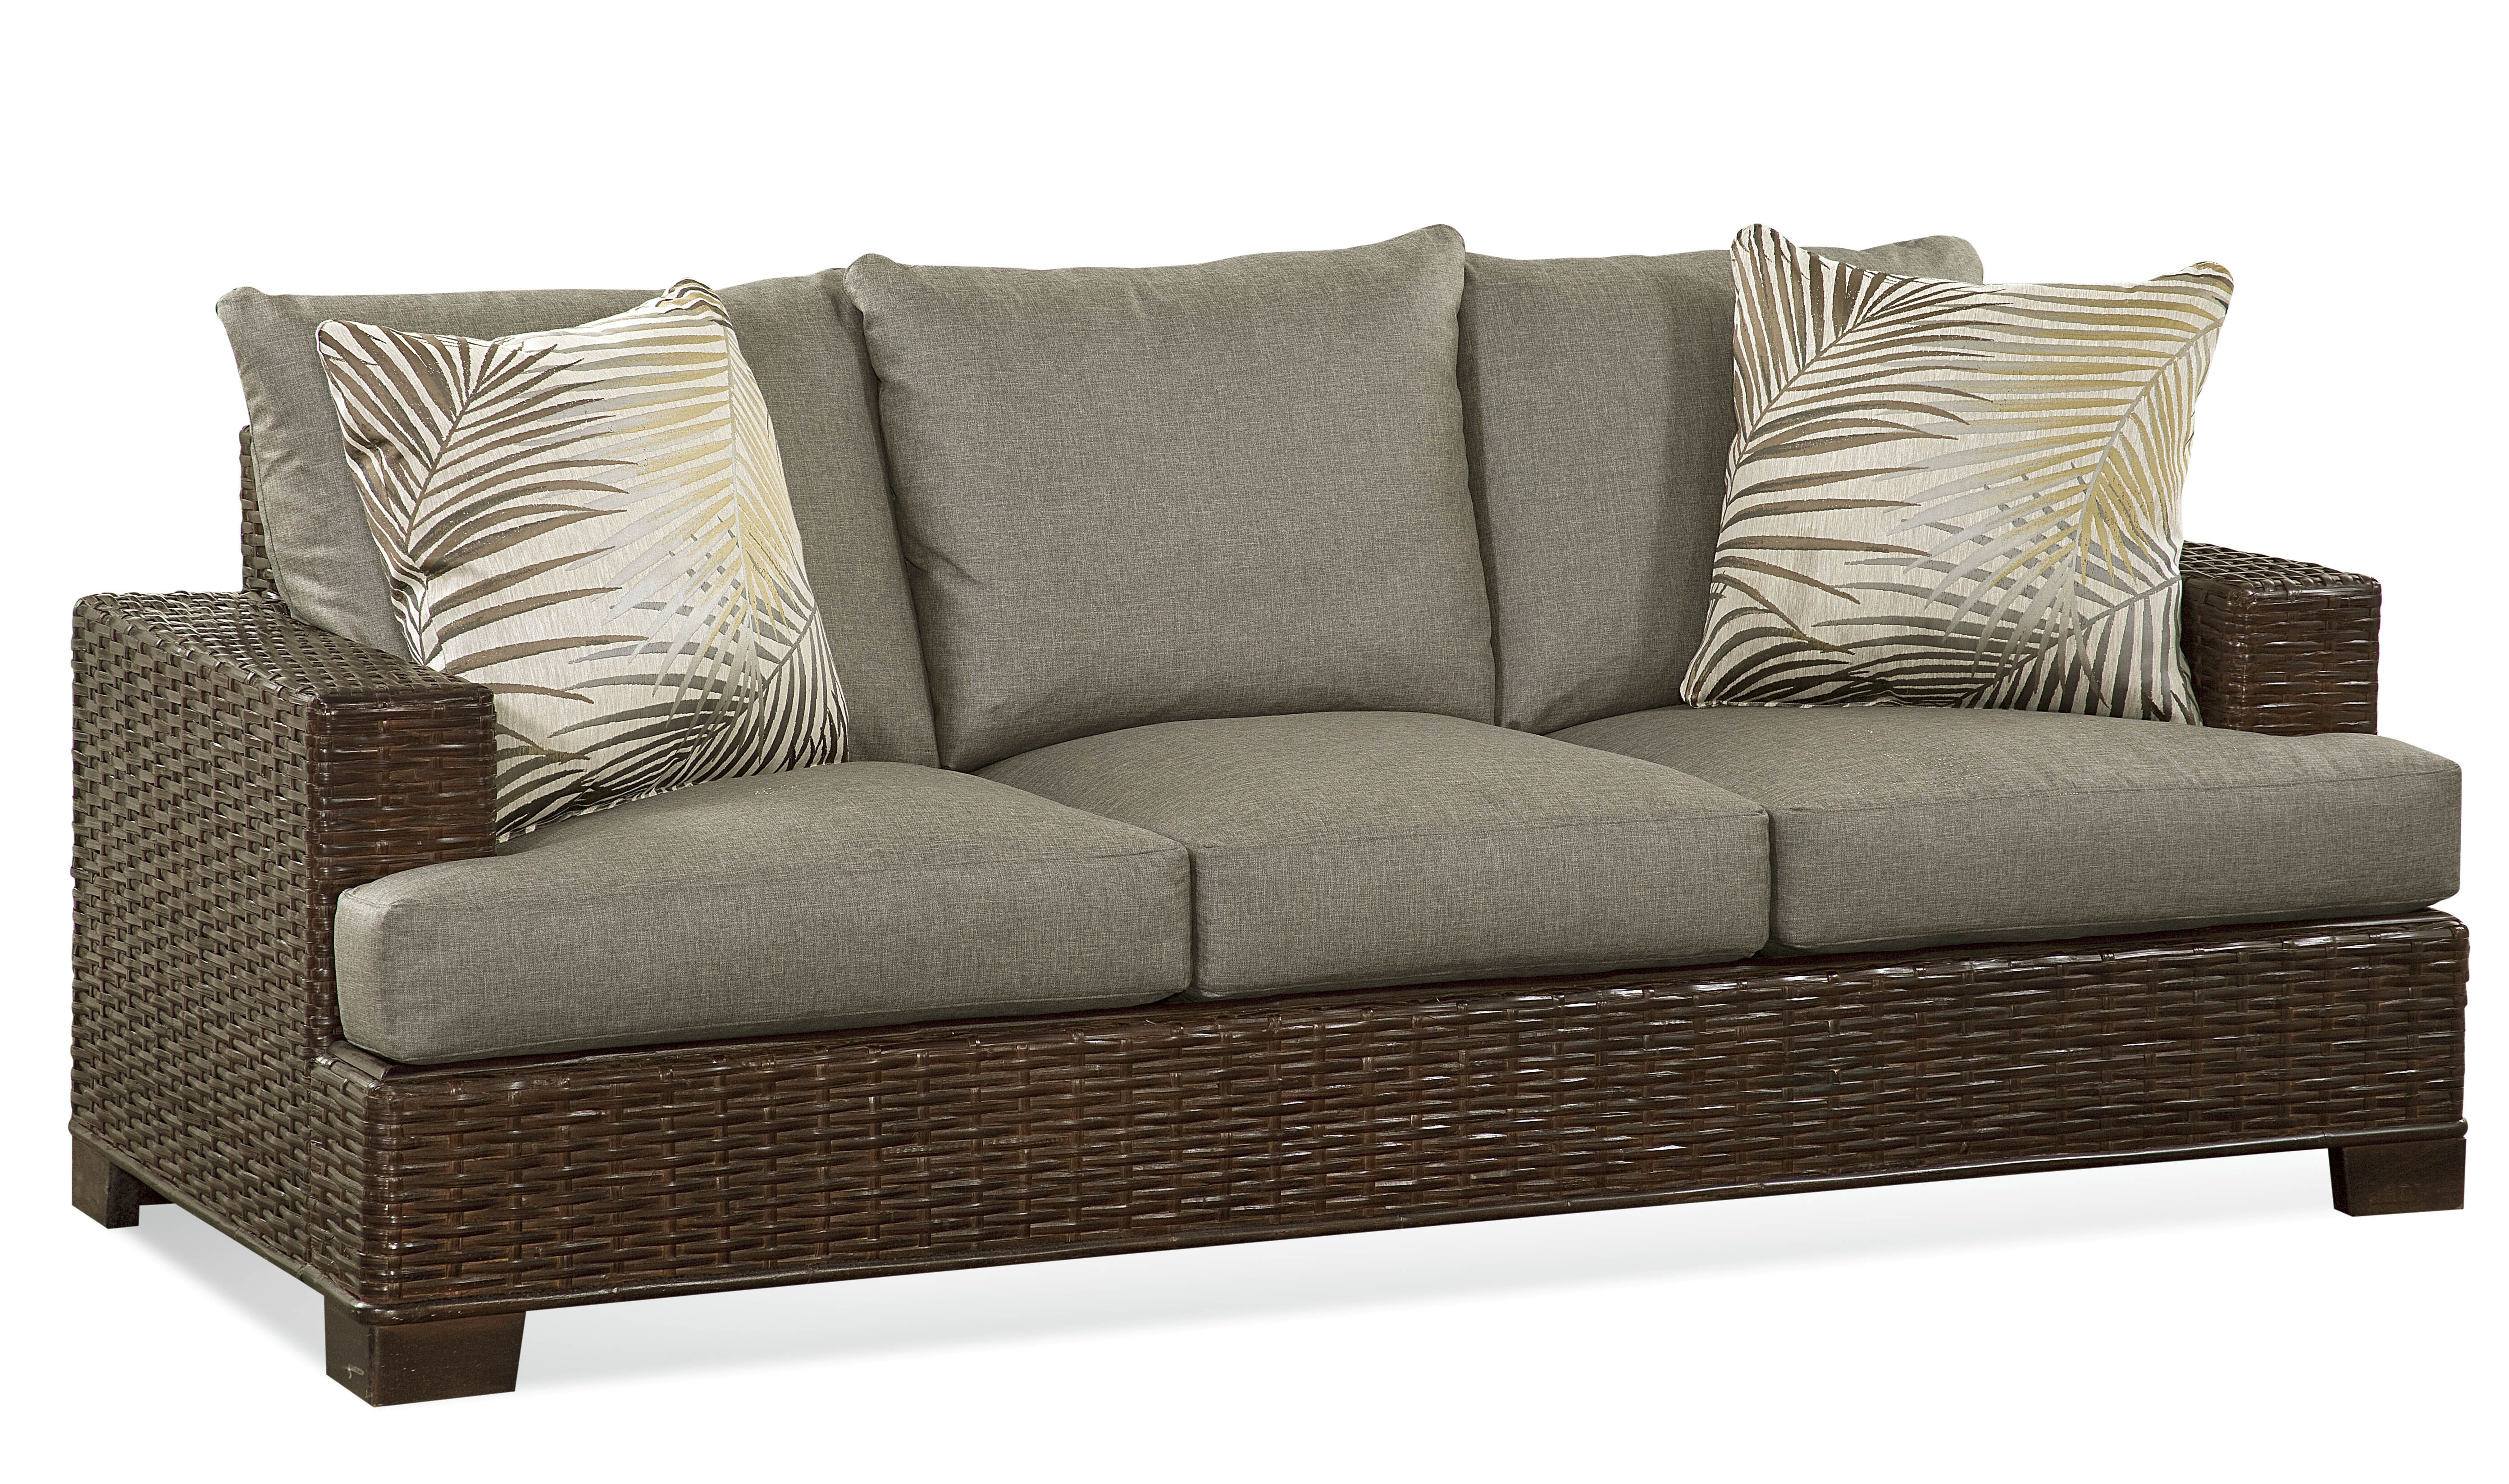 Beautiful Shop For Braxton Culler Sofa, And Other Living Room Sofas At Weinbergeru0027s  Furniture And Mattress Showcase In Augusta And Lake Oconee, GA.